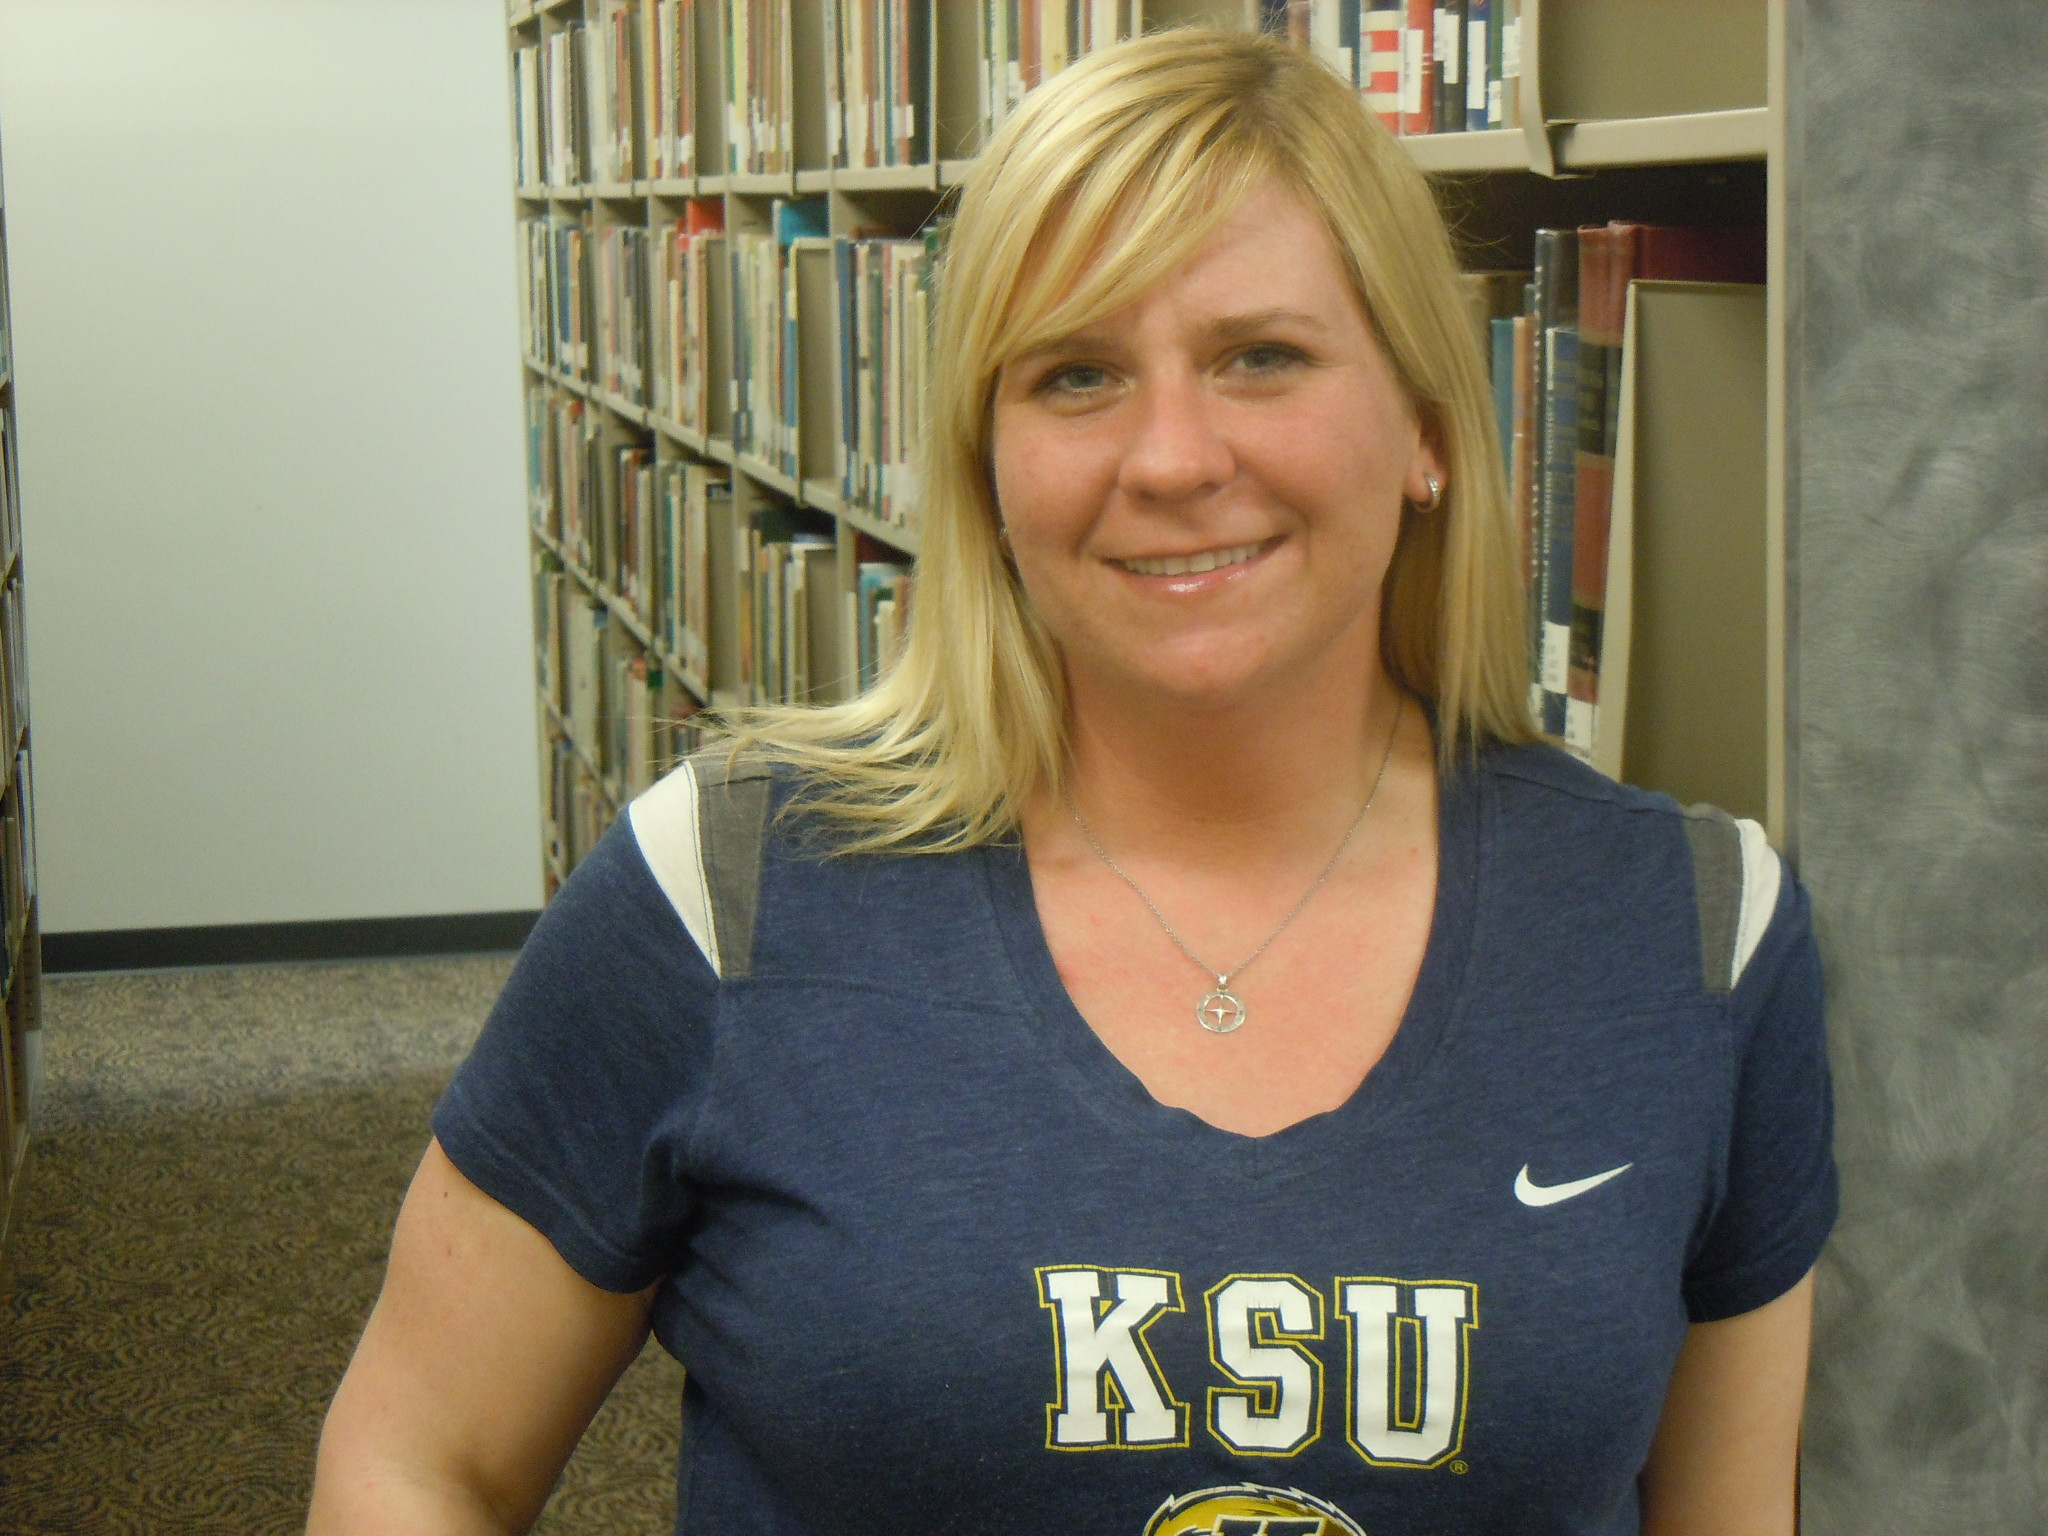 Kent State Trumbull senior Stacee Stinedurf was recently honored by the Kent State Women's Center